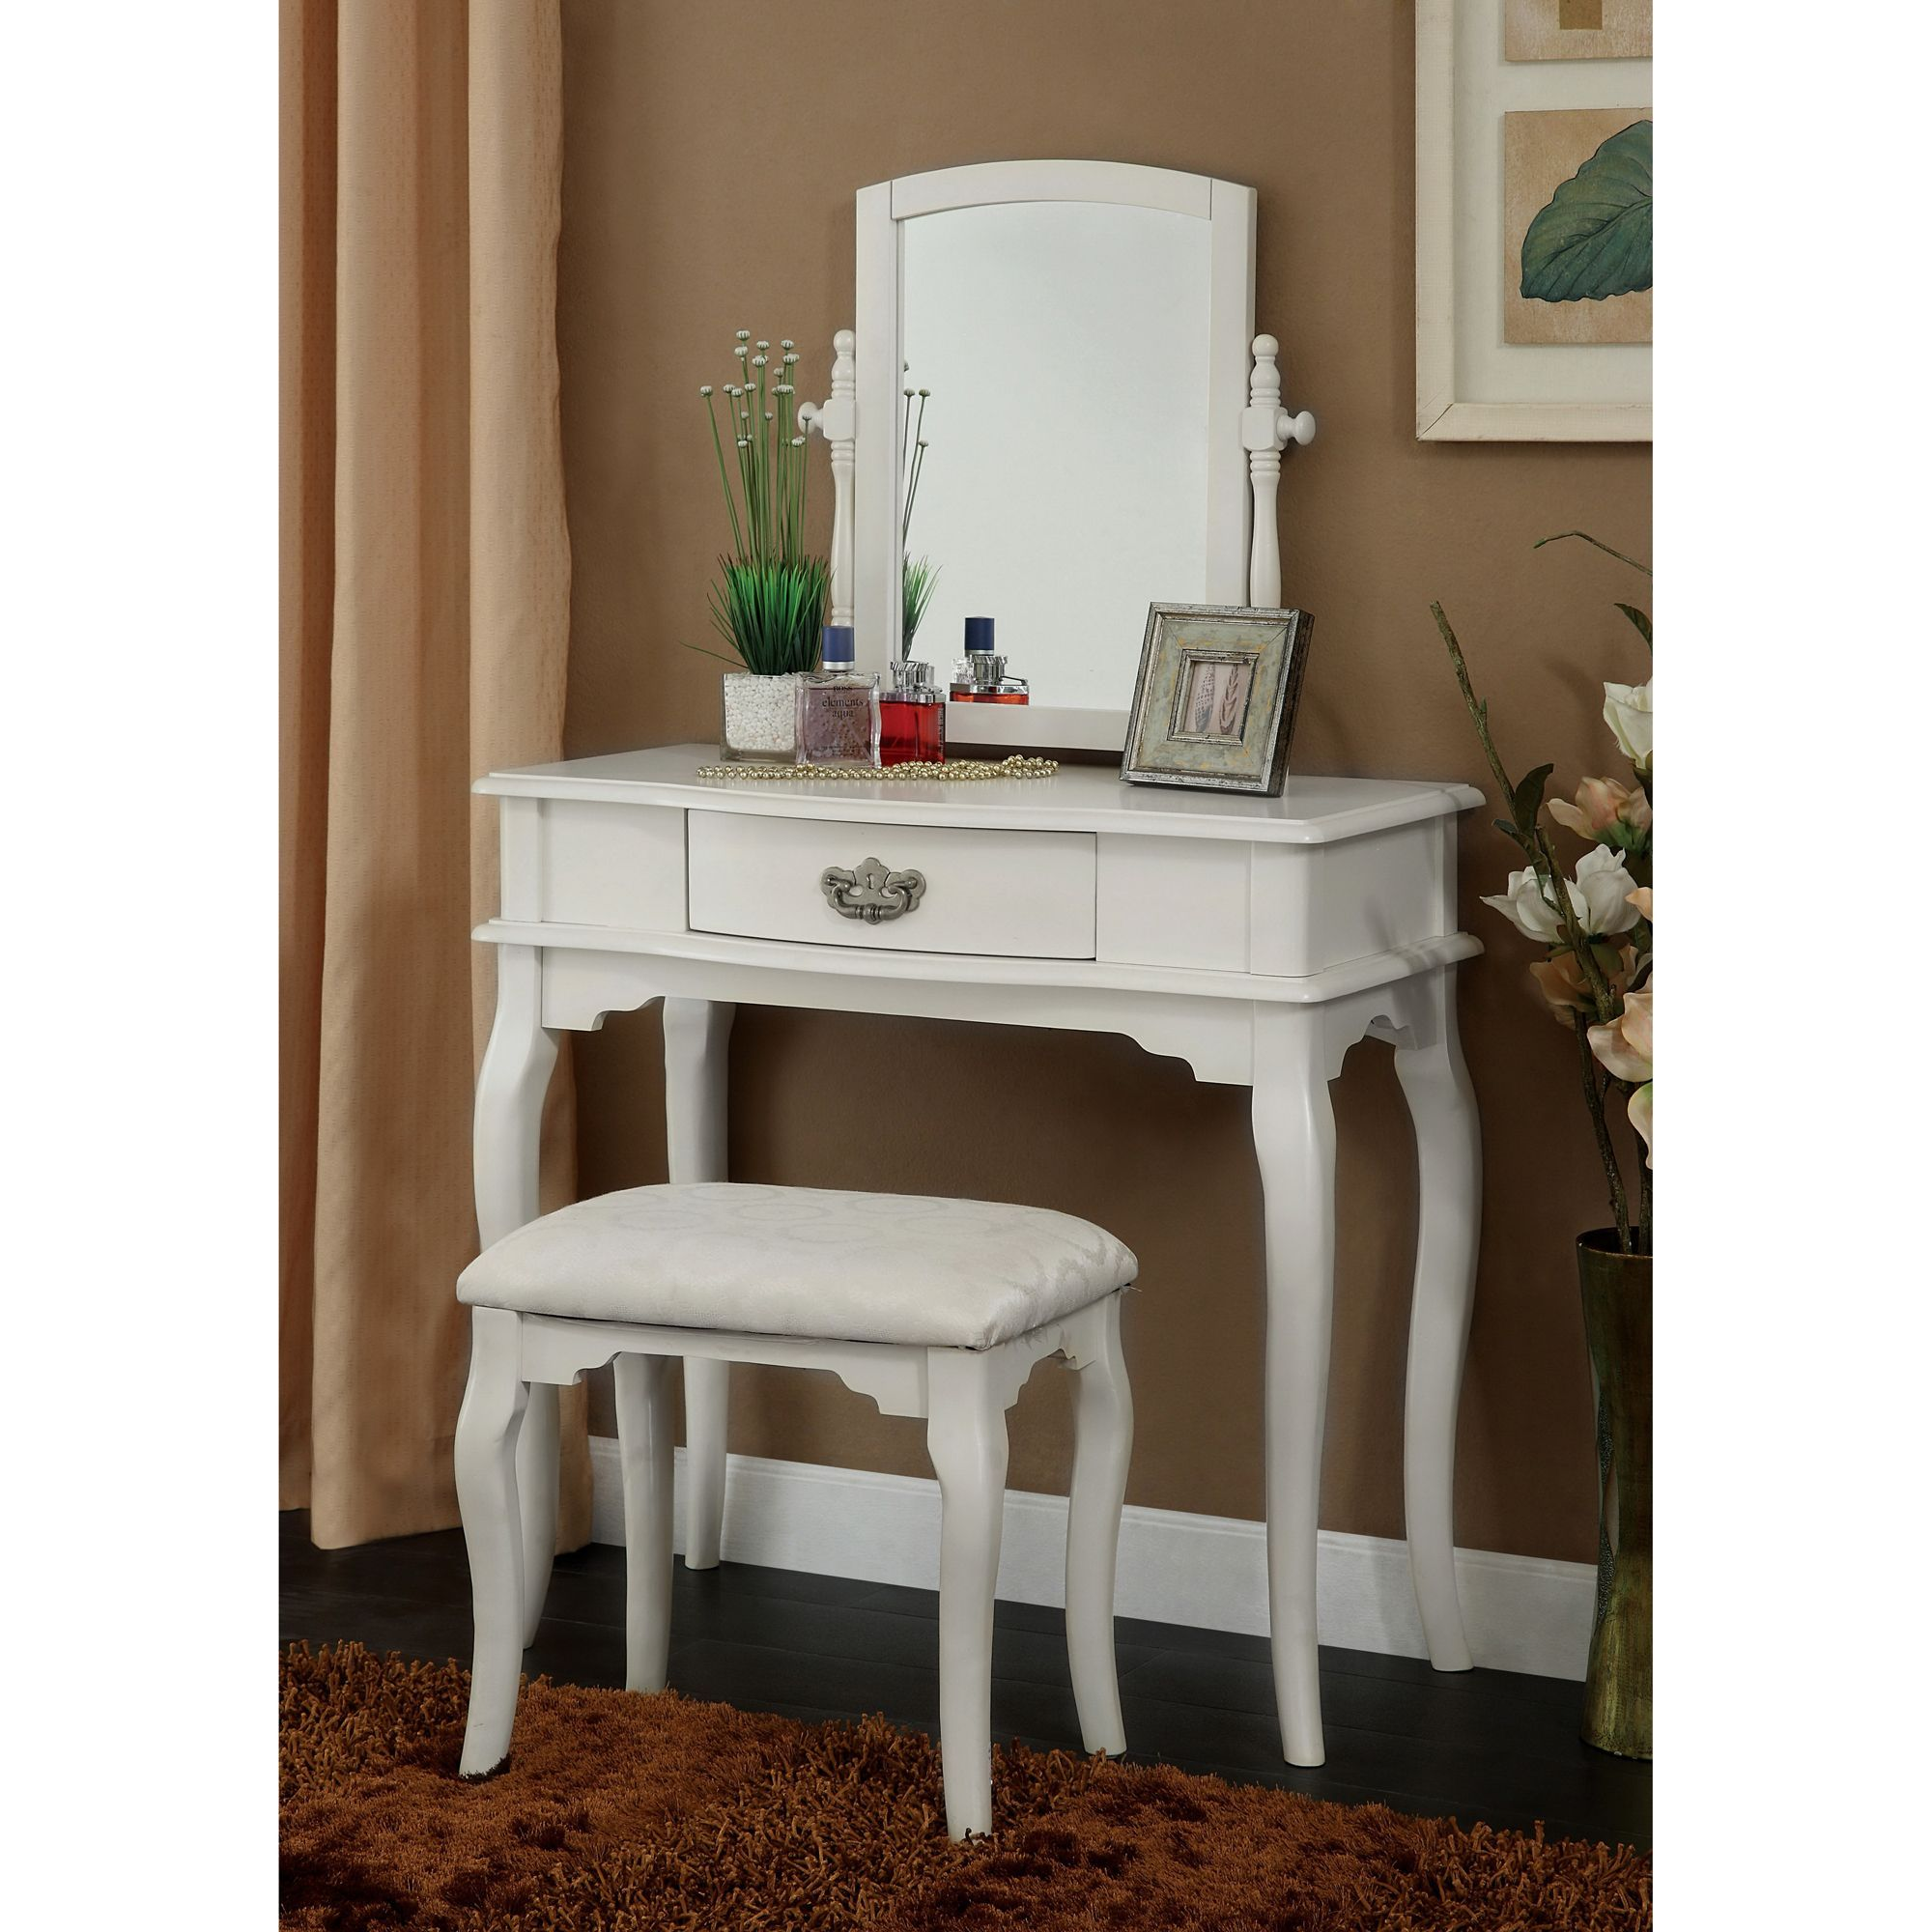 Furniture of america lorena piece solid wood vanity table and